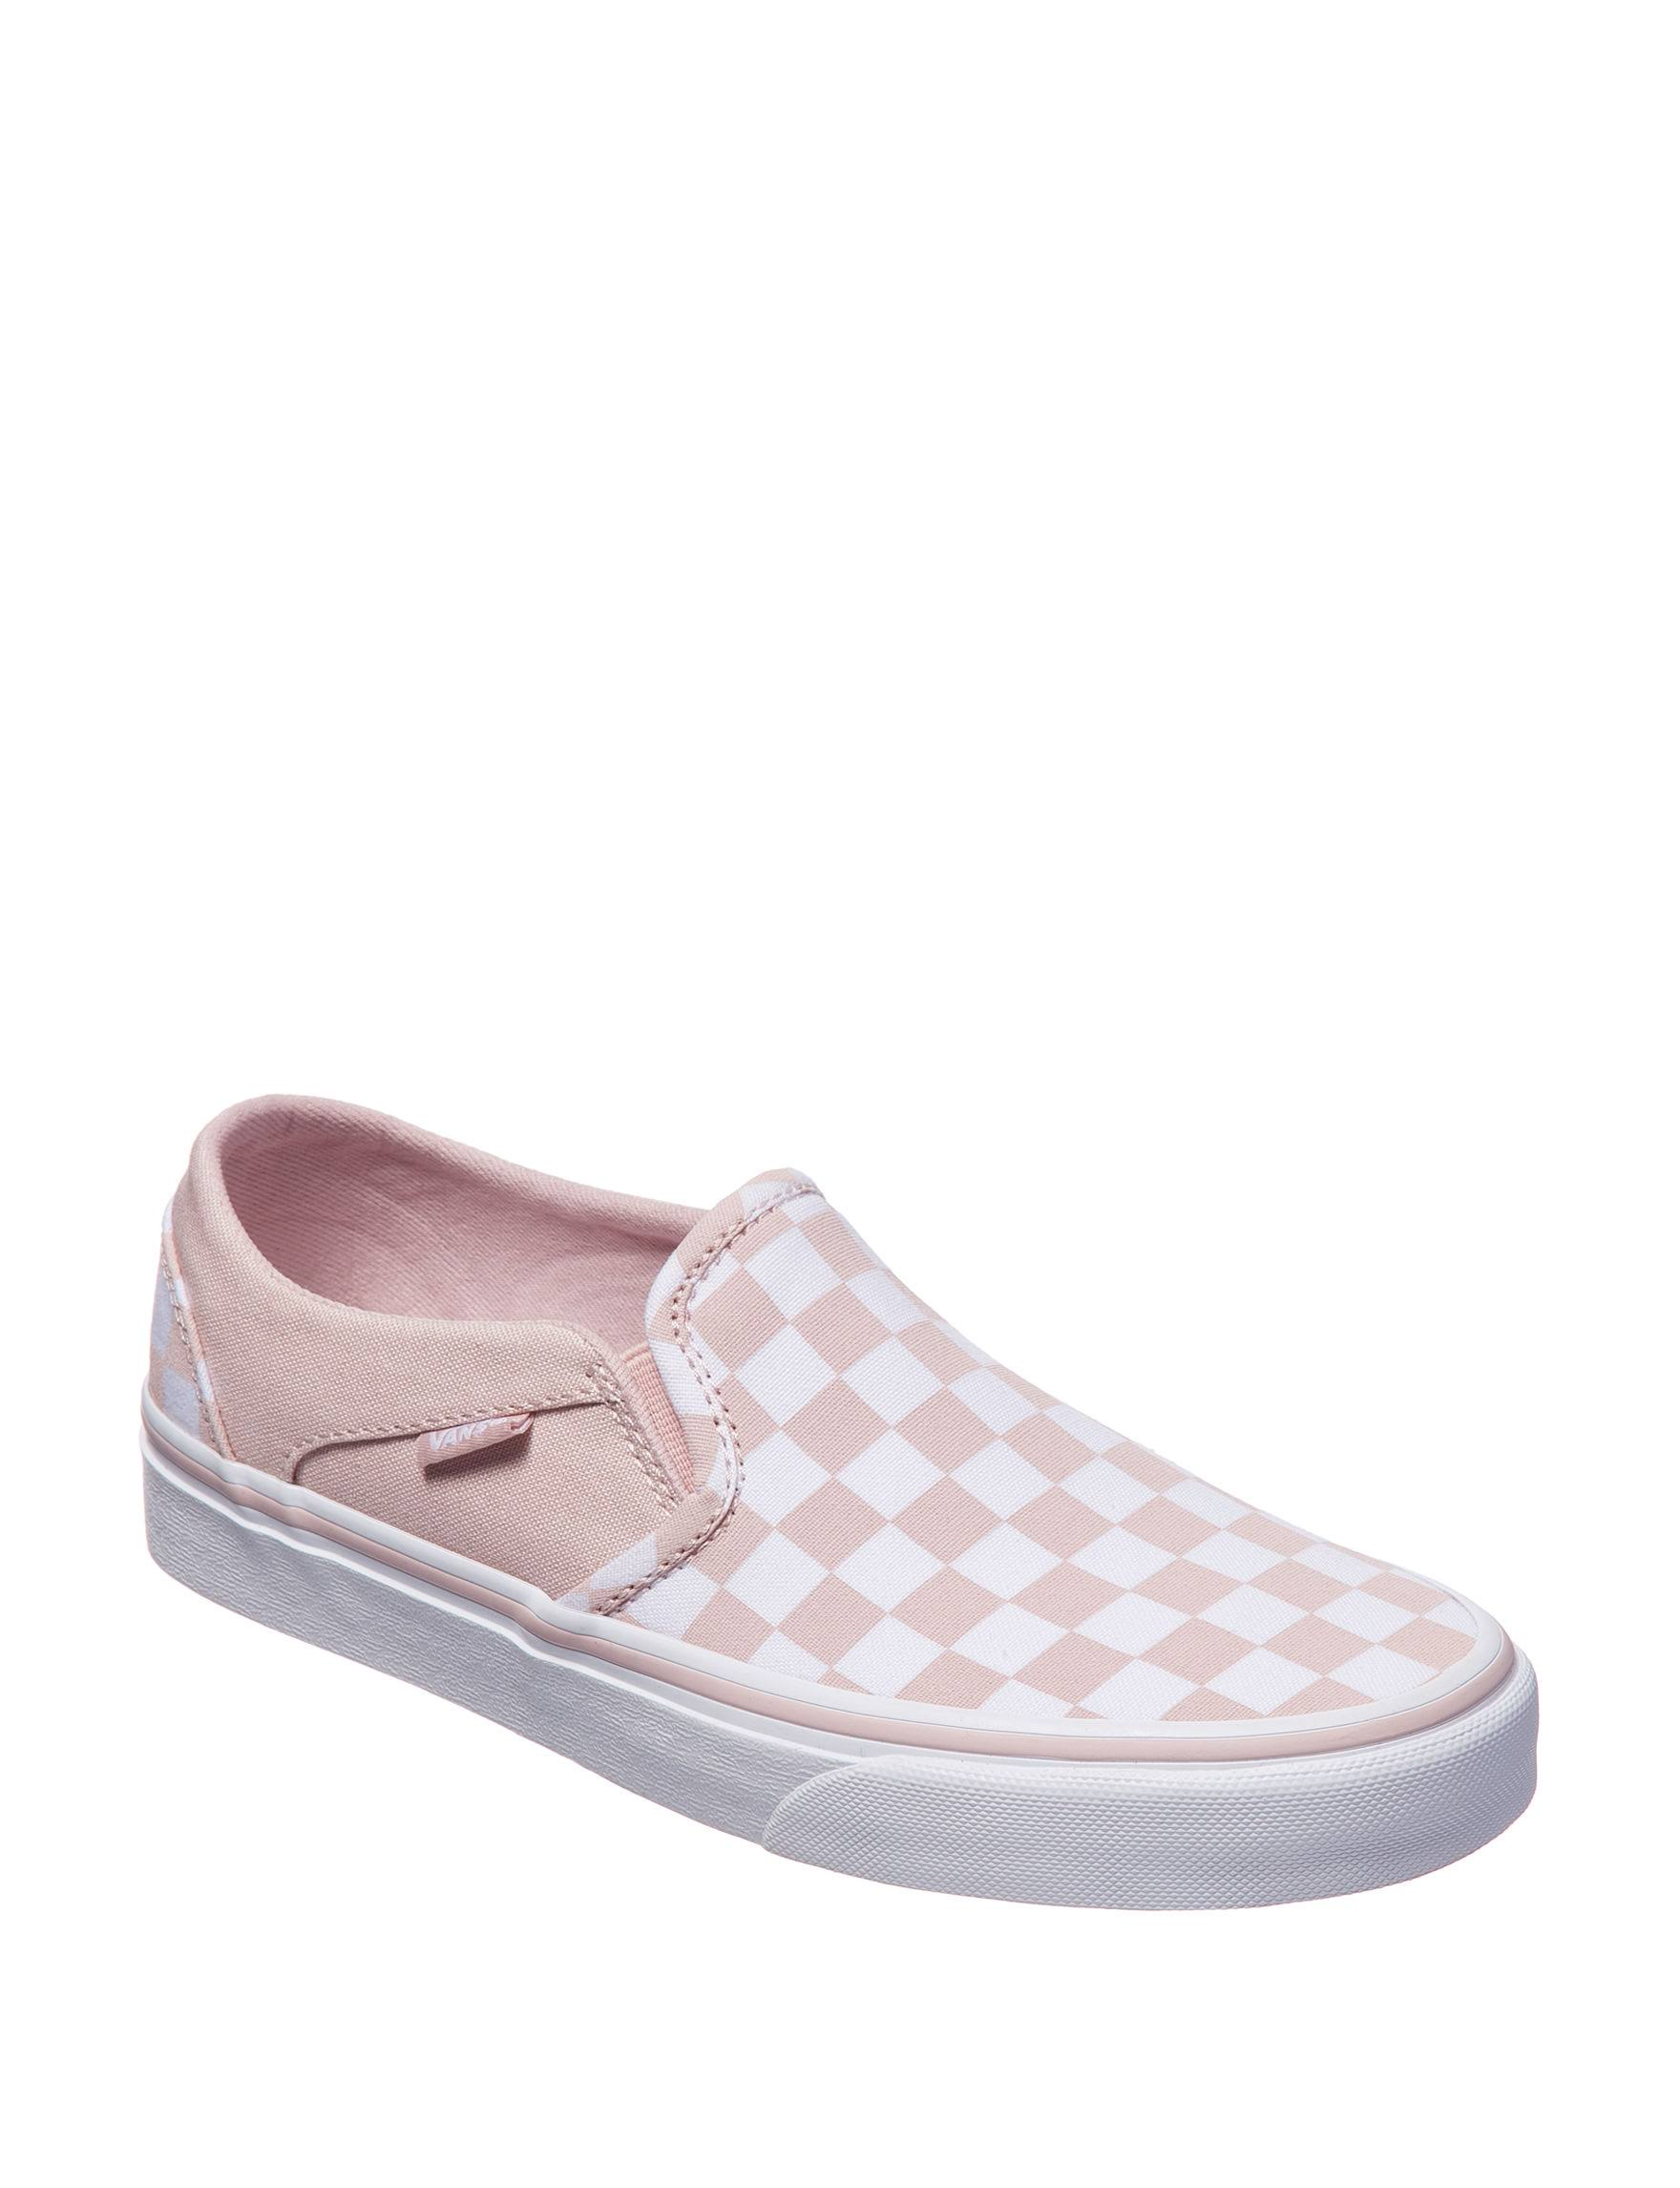 Pink Checkerboard Rose Stores Sepia At Check Shoes 6 on Vans Stage Size Slip Asher ZnqWO1